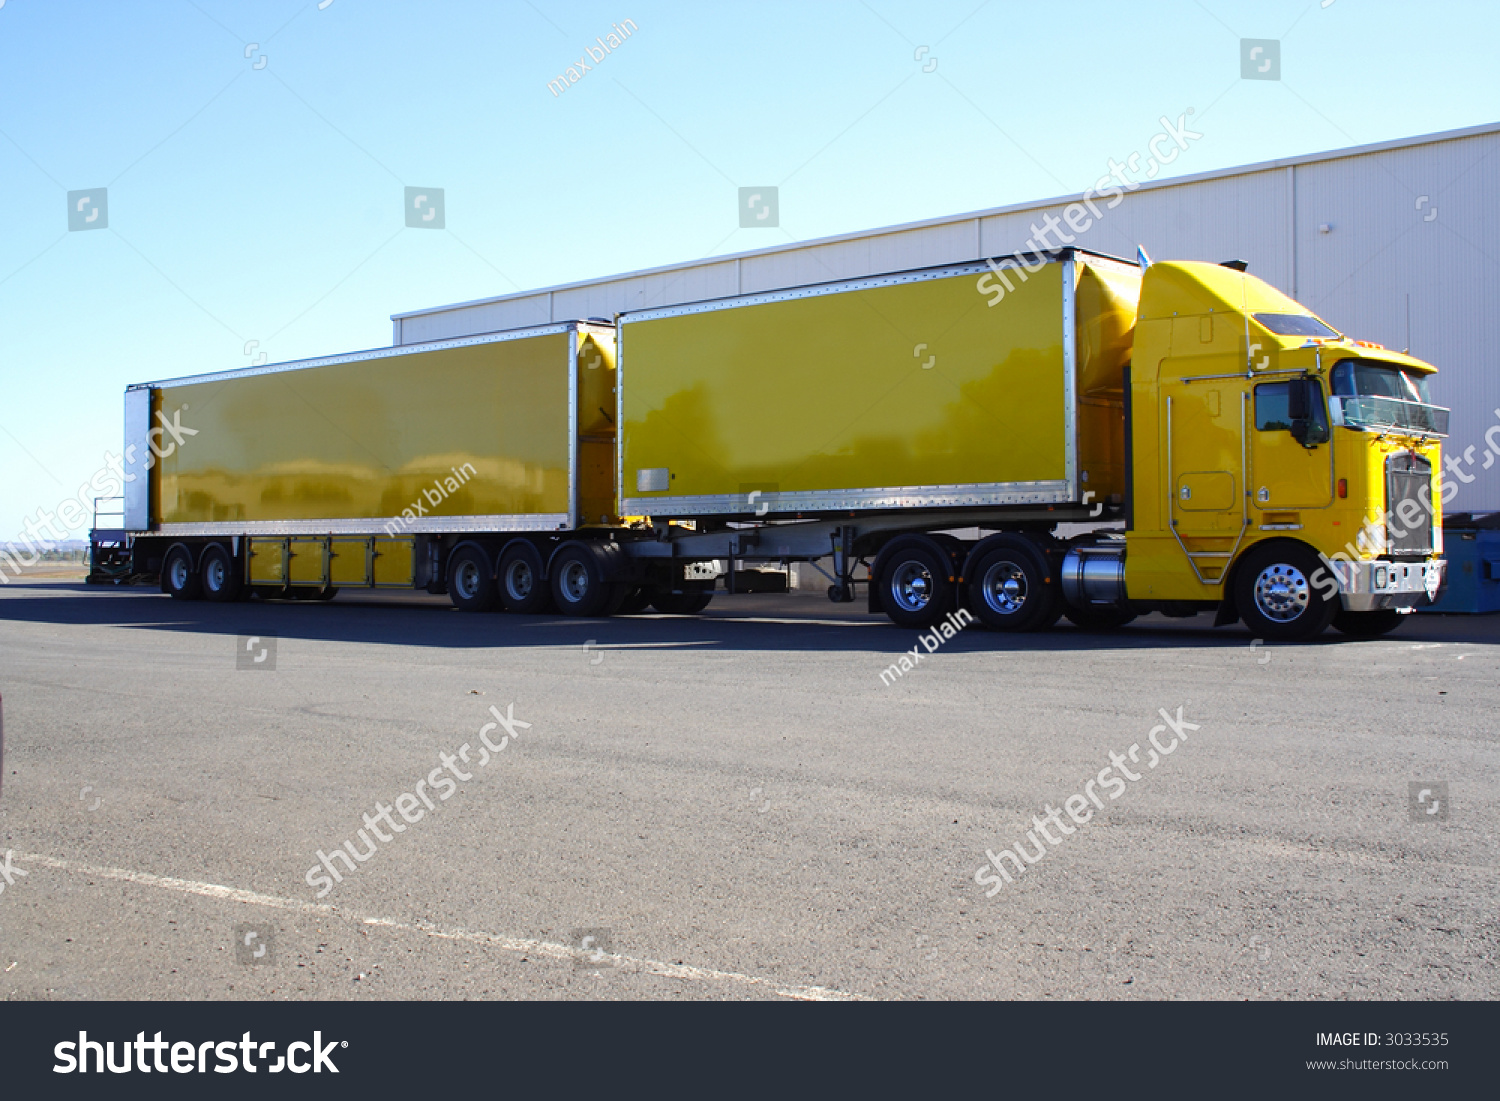 Garage Renault Blain Articulated Semi Truck Twin Trailer Stock Photo Edit Now 3033535